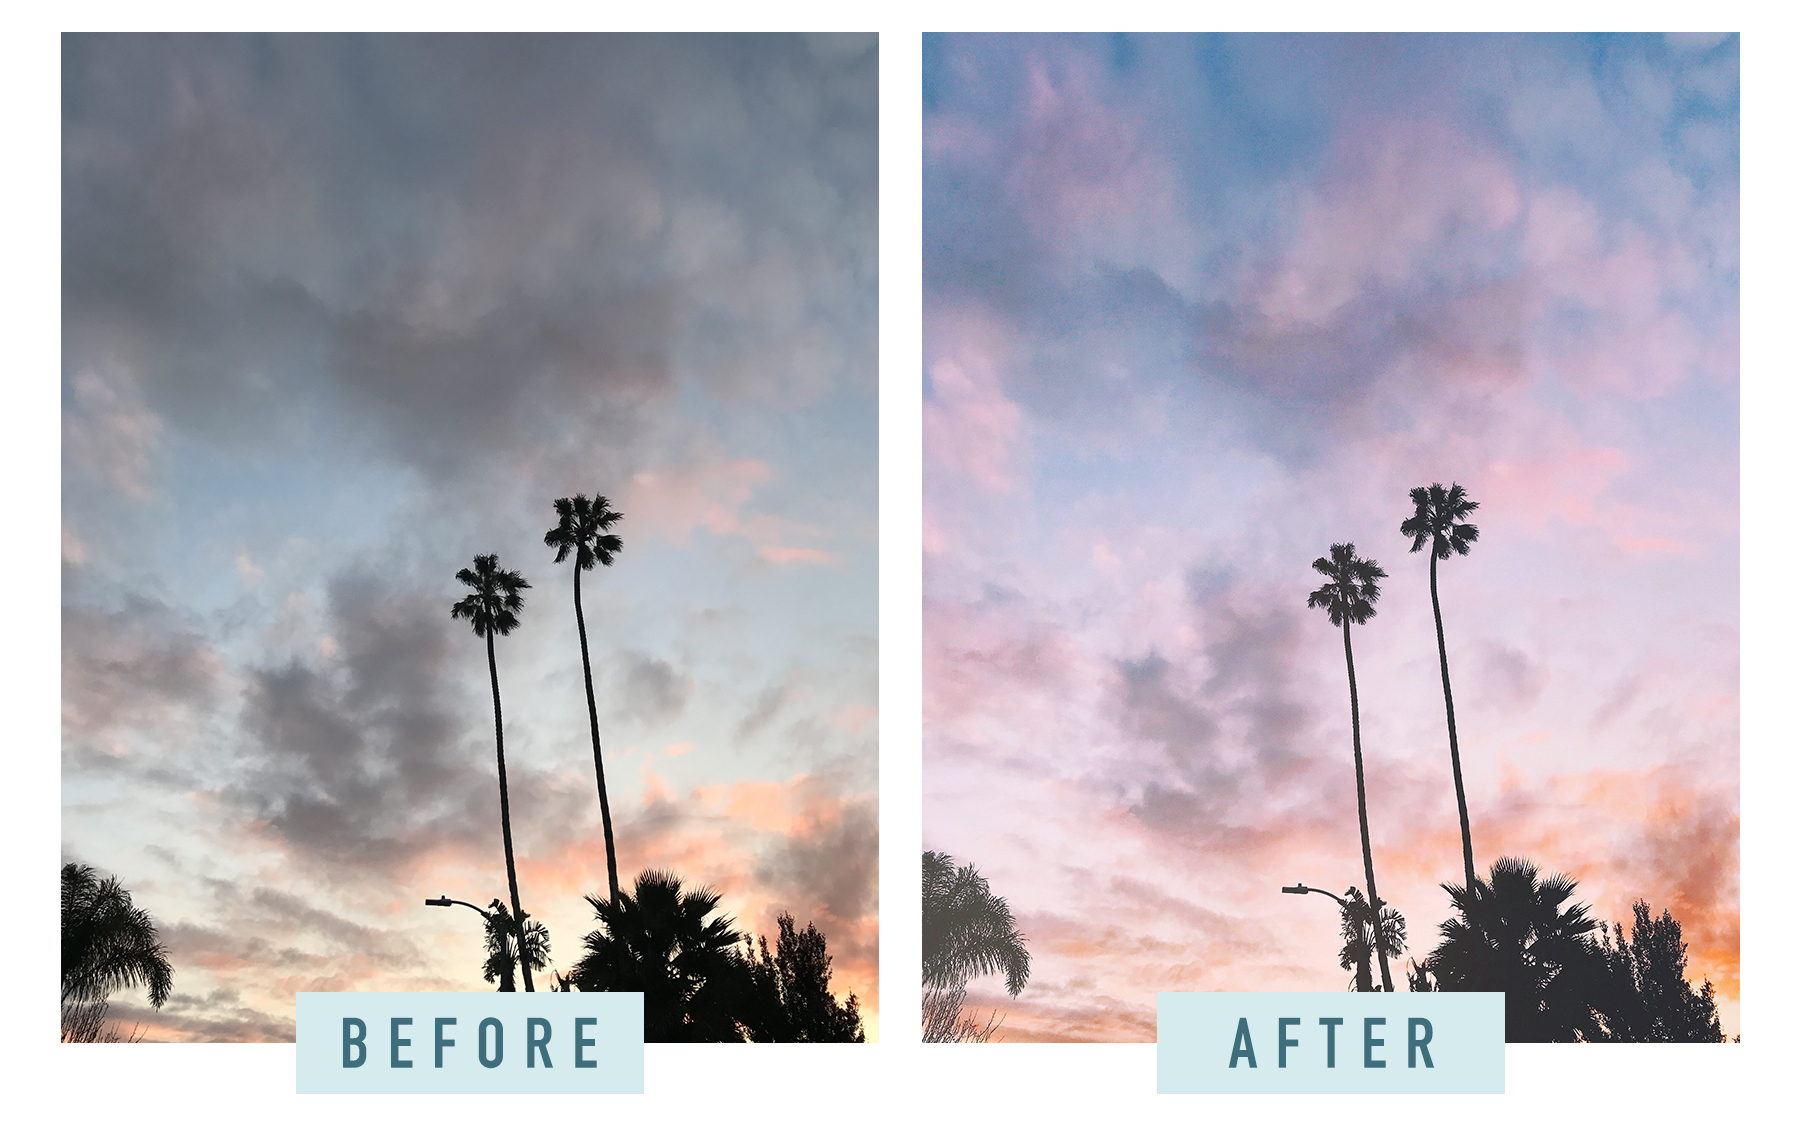 iphone-photo-editing-instagram-before-after.jpg